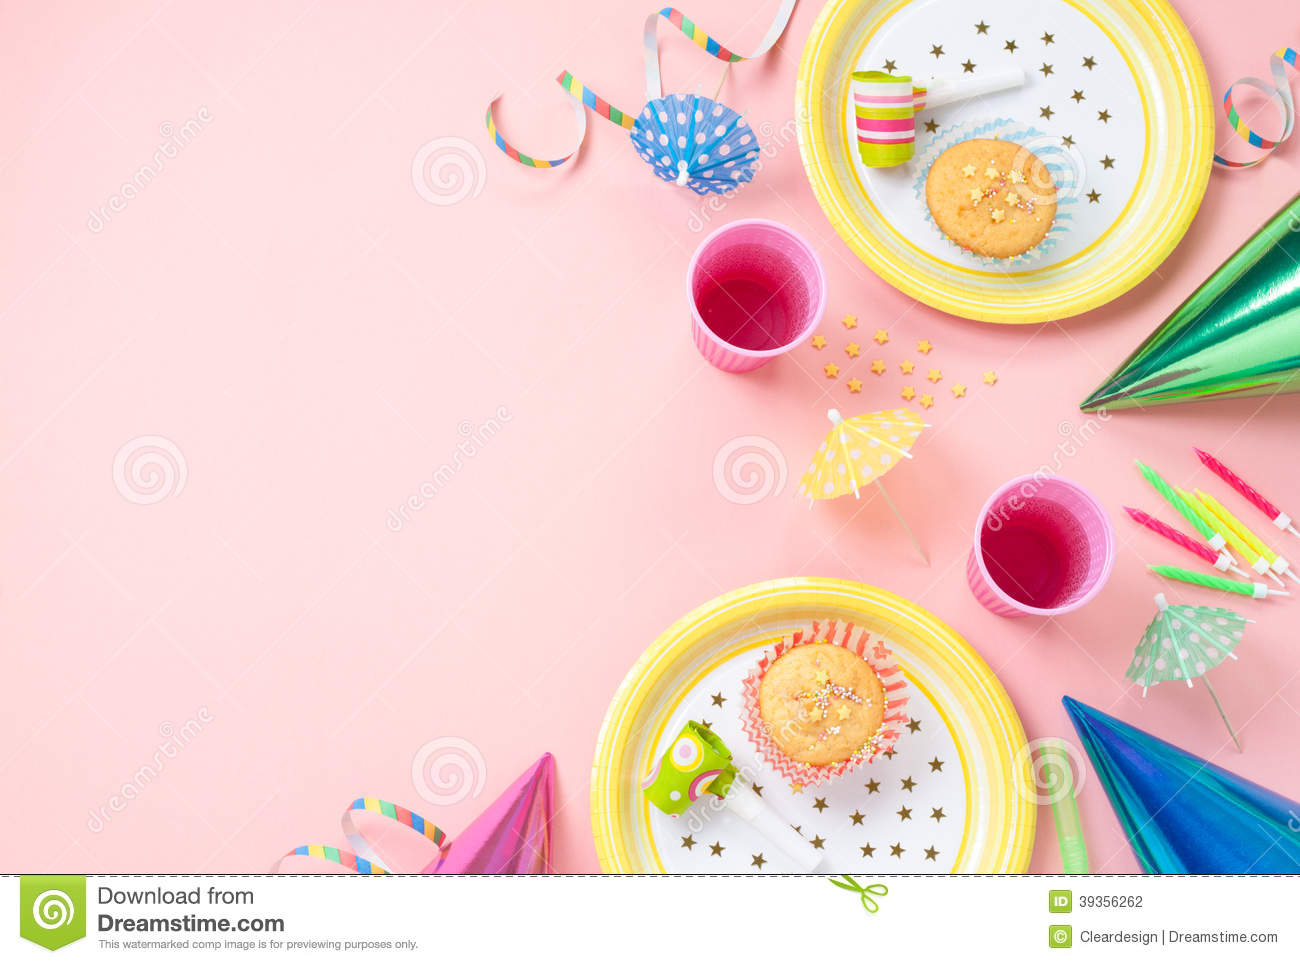 Girl birthday decorations on pink table stock photo for Background decoration images